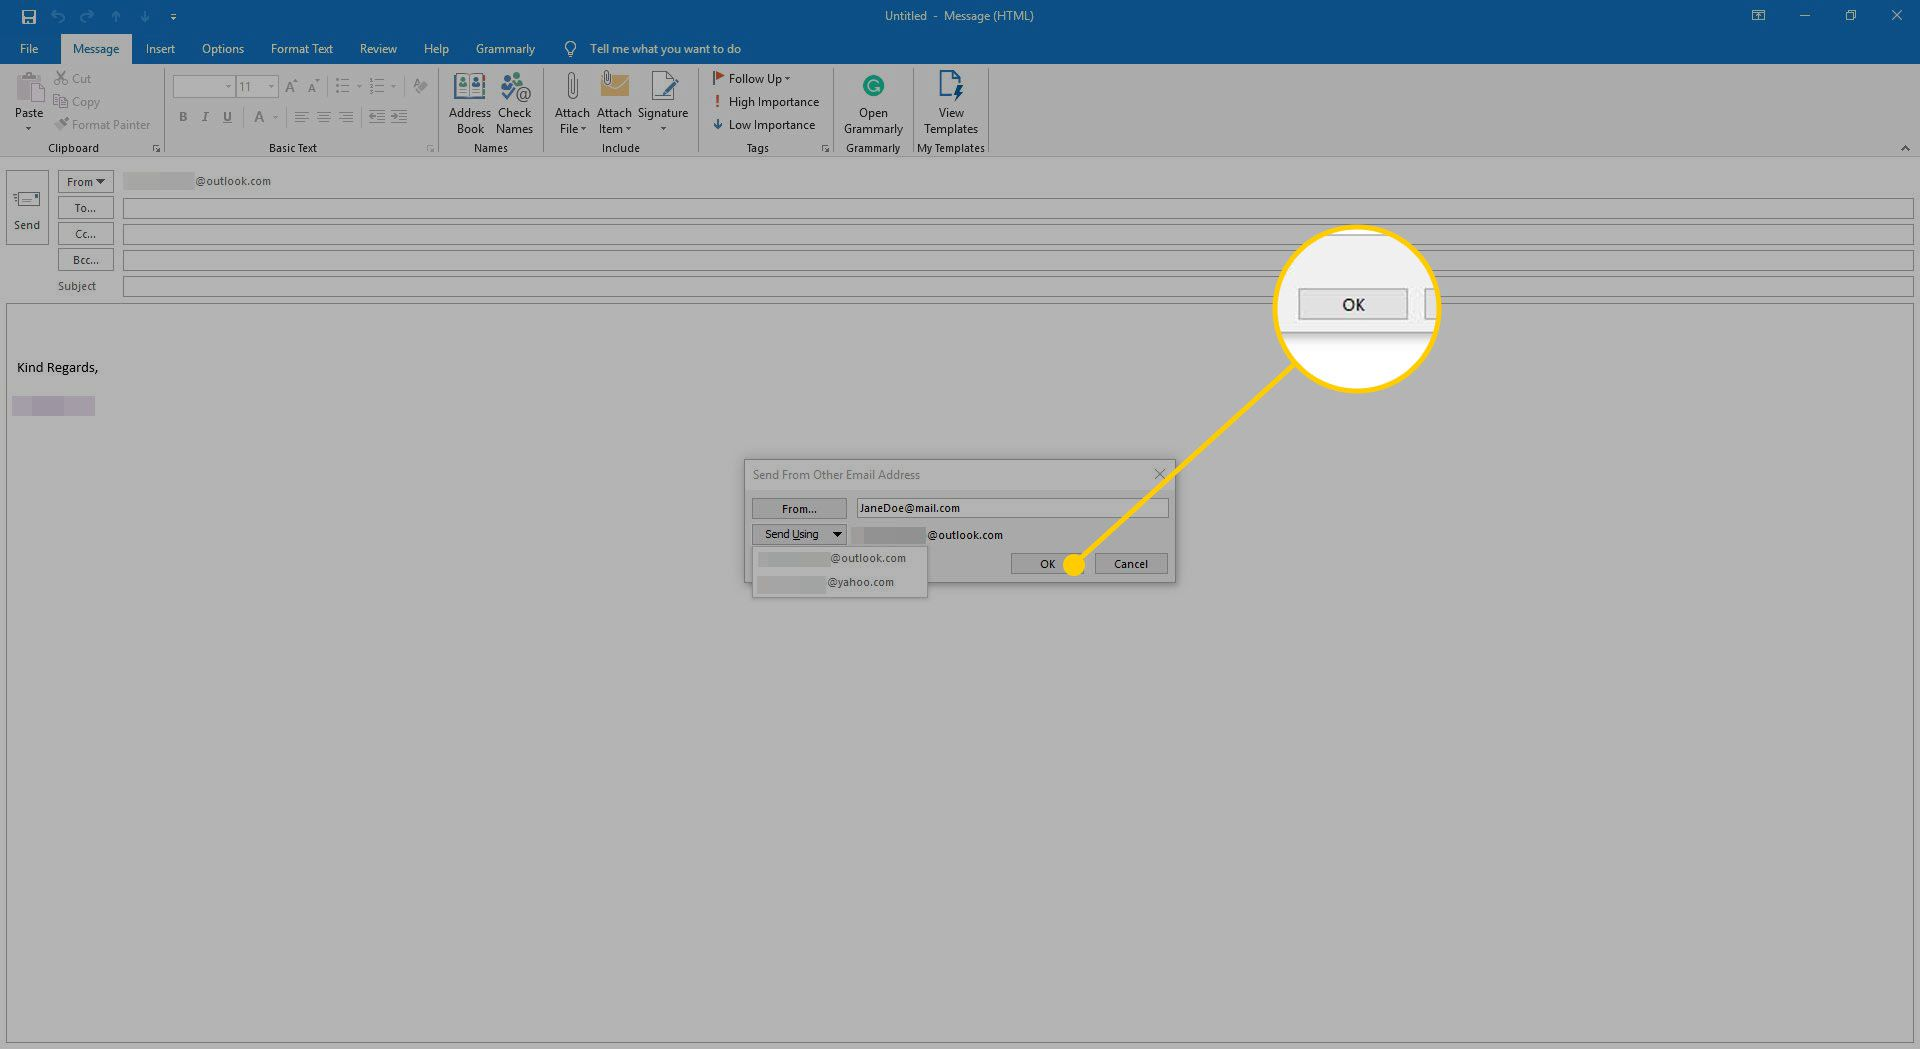 Send Using menu in Outlook with the OK button highlighted